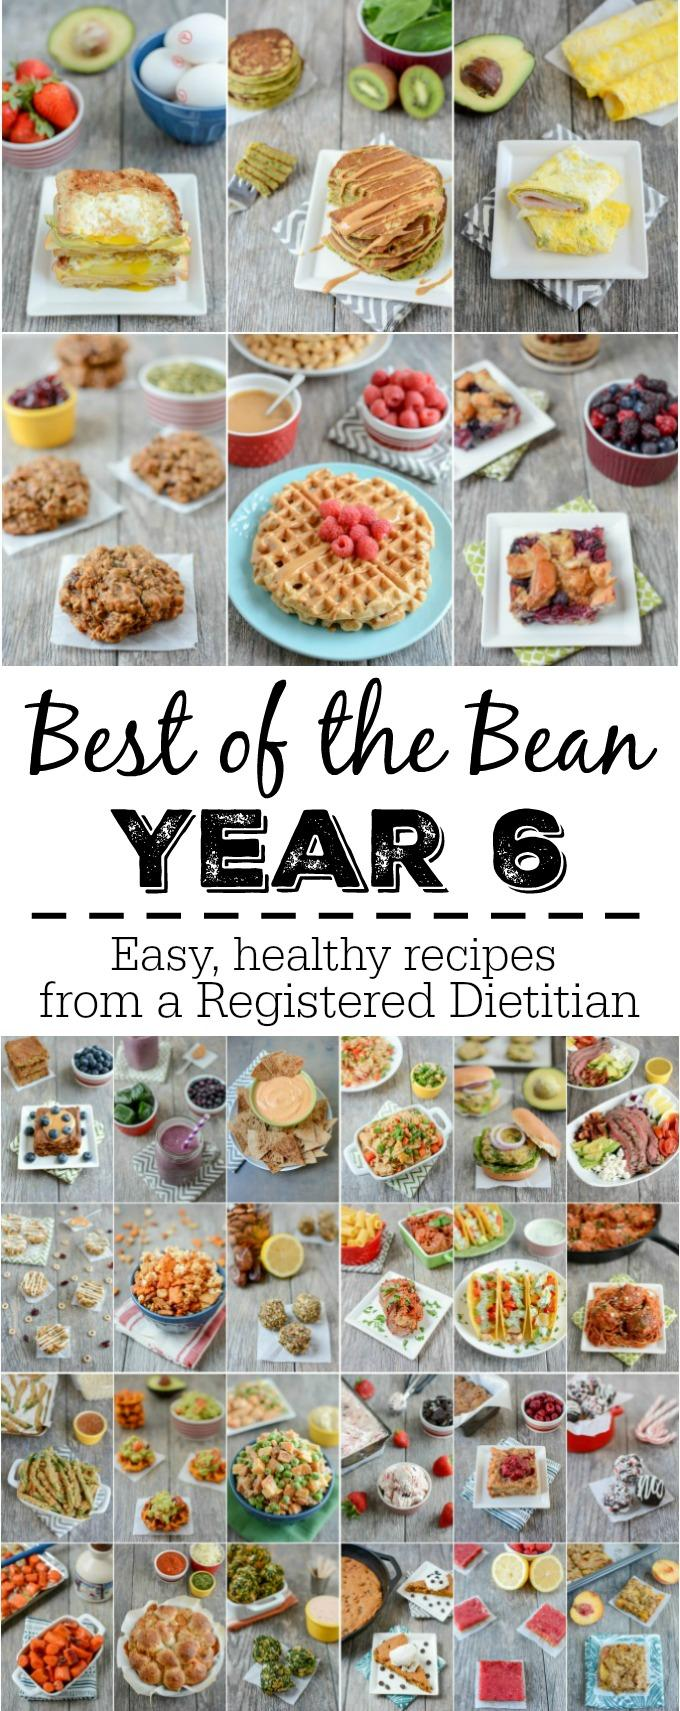 A year of healthy recipes from a Registered Dietitian.